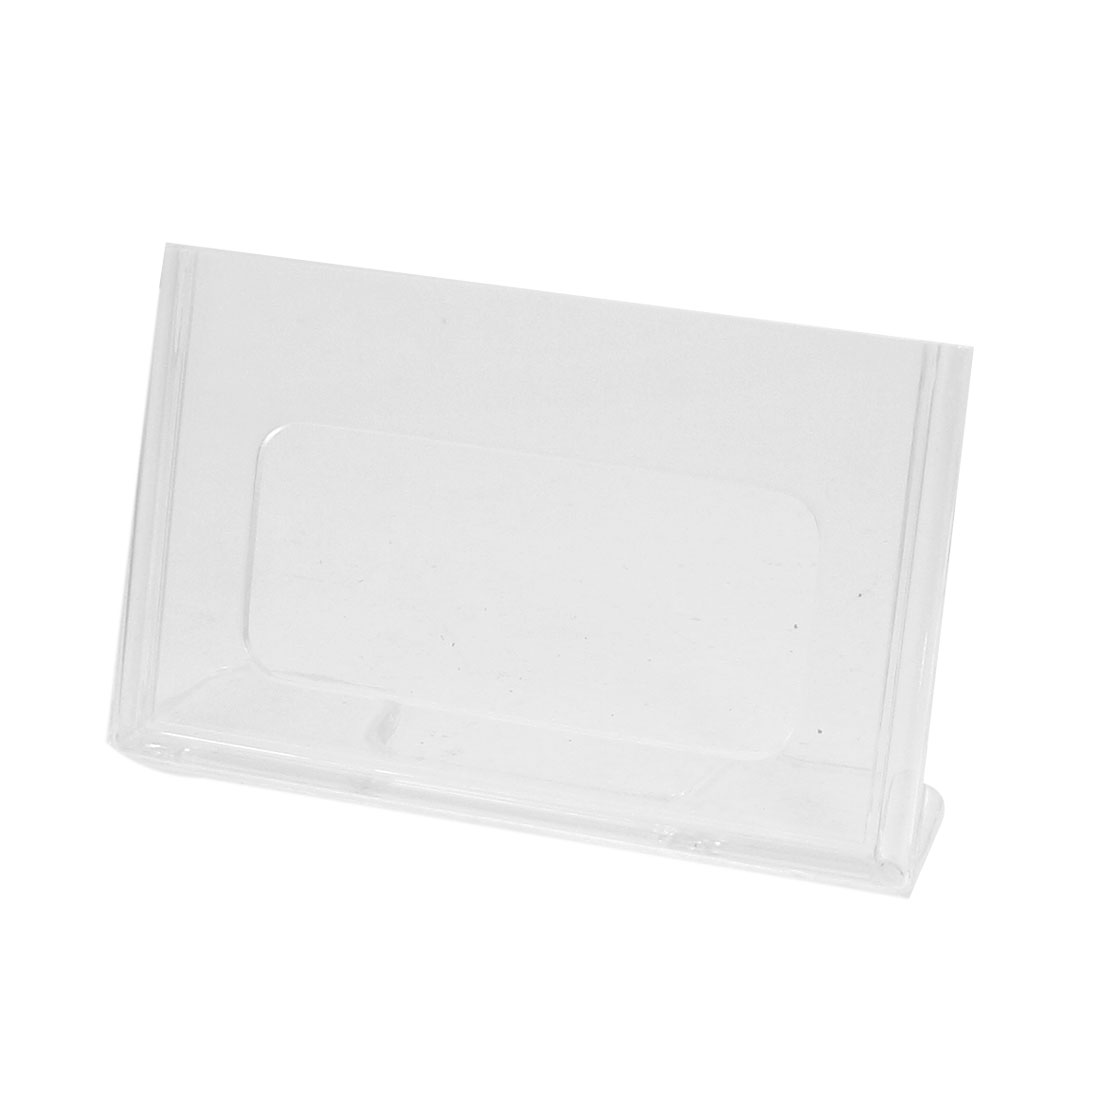 L Shapes Bases Clear Plastic Rectangle Table Display Holder 5.4 x 8.5cm